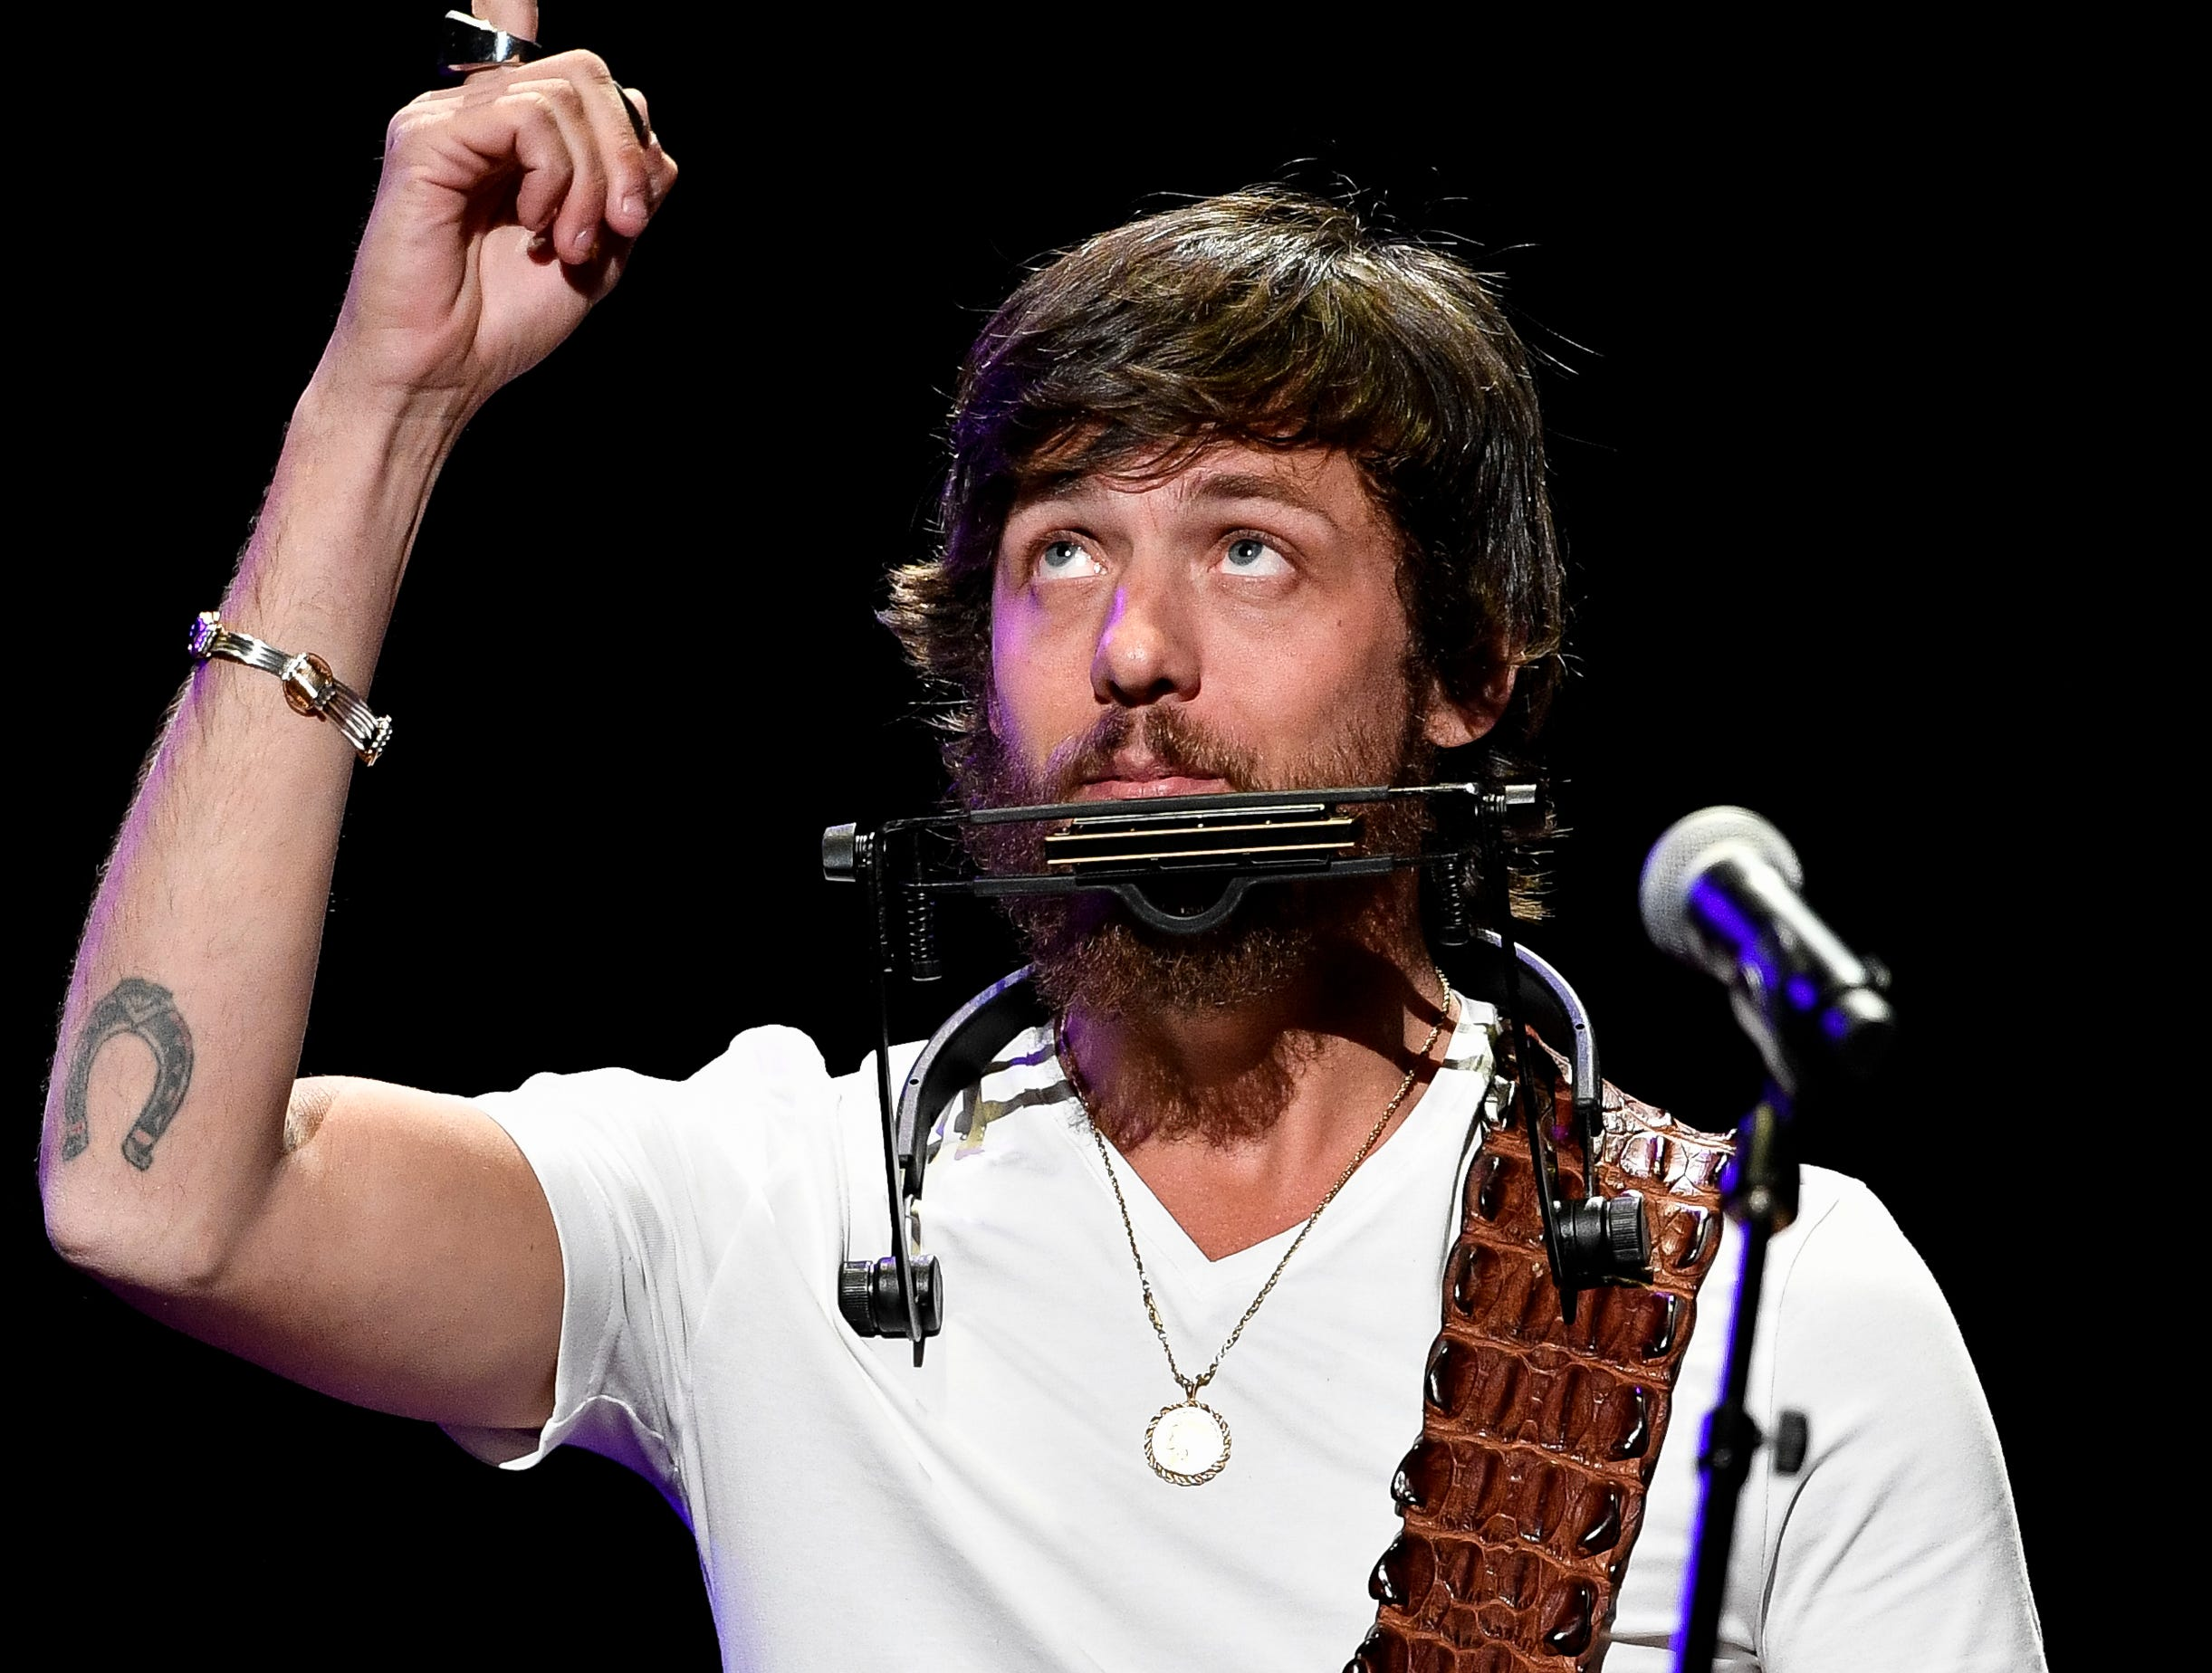 Chris Janson performs during the C'Ya On The Flipside Benefit Concert at the Grand Ole Opry House in Nashville, Tenn., Wednesday, Jan. 9, 2019.